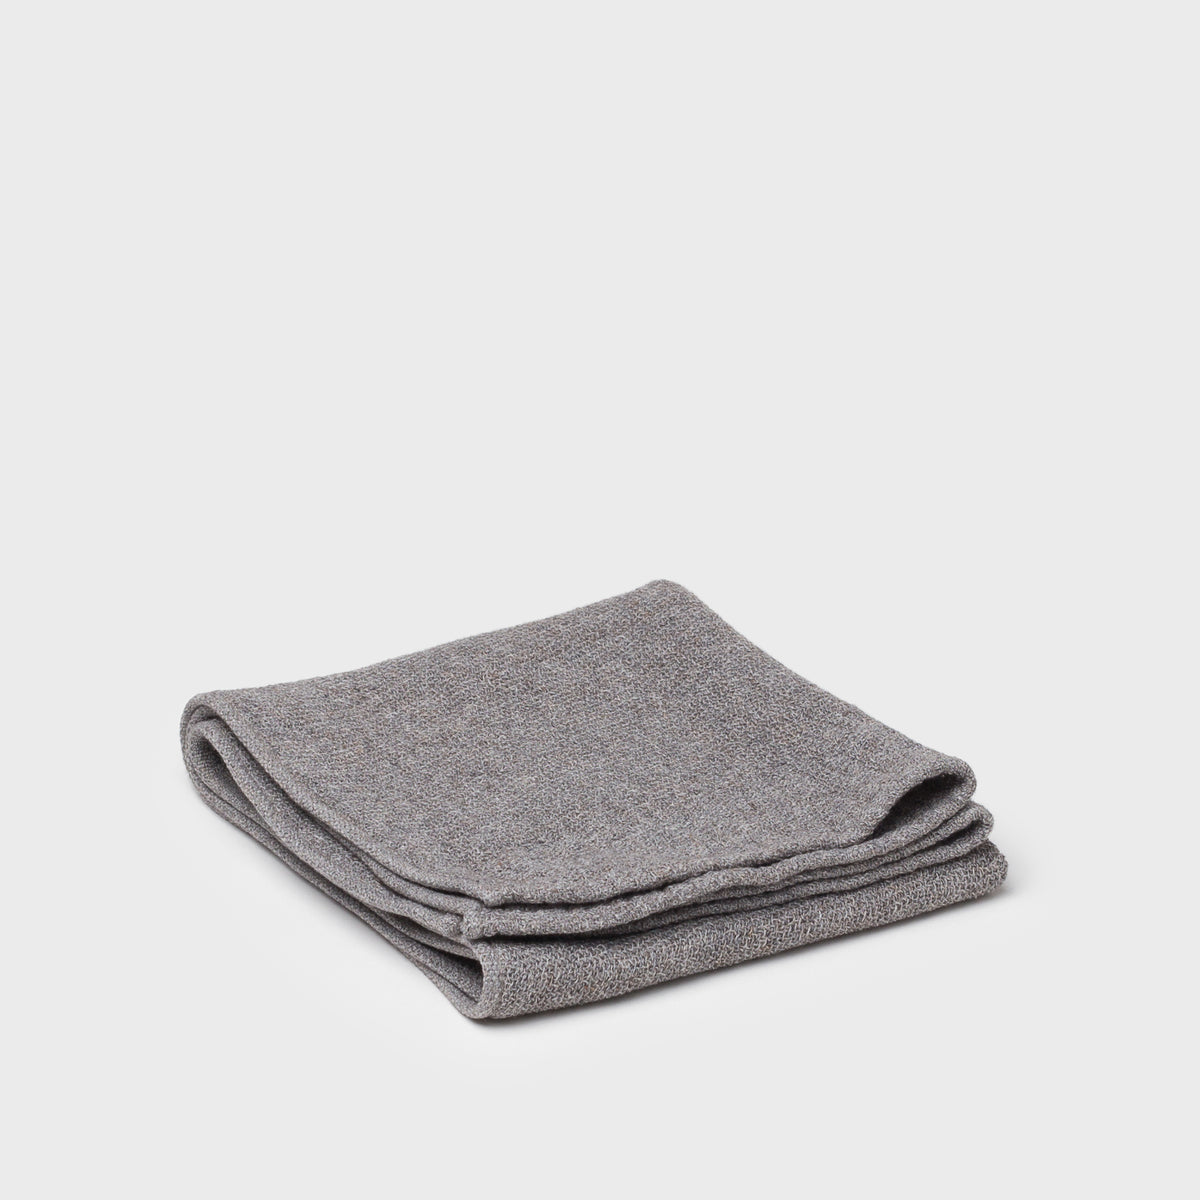 Load image into Gallery viewer, Shoppe Amber Interiors Lana Grey Towel Washcloth